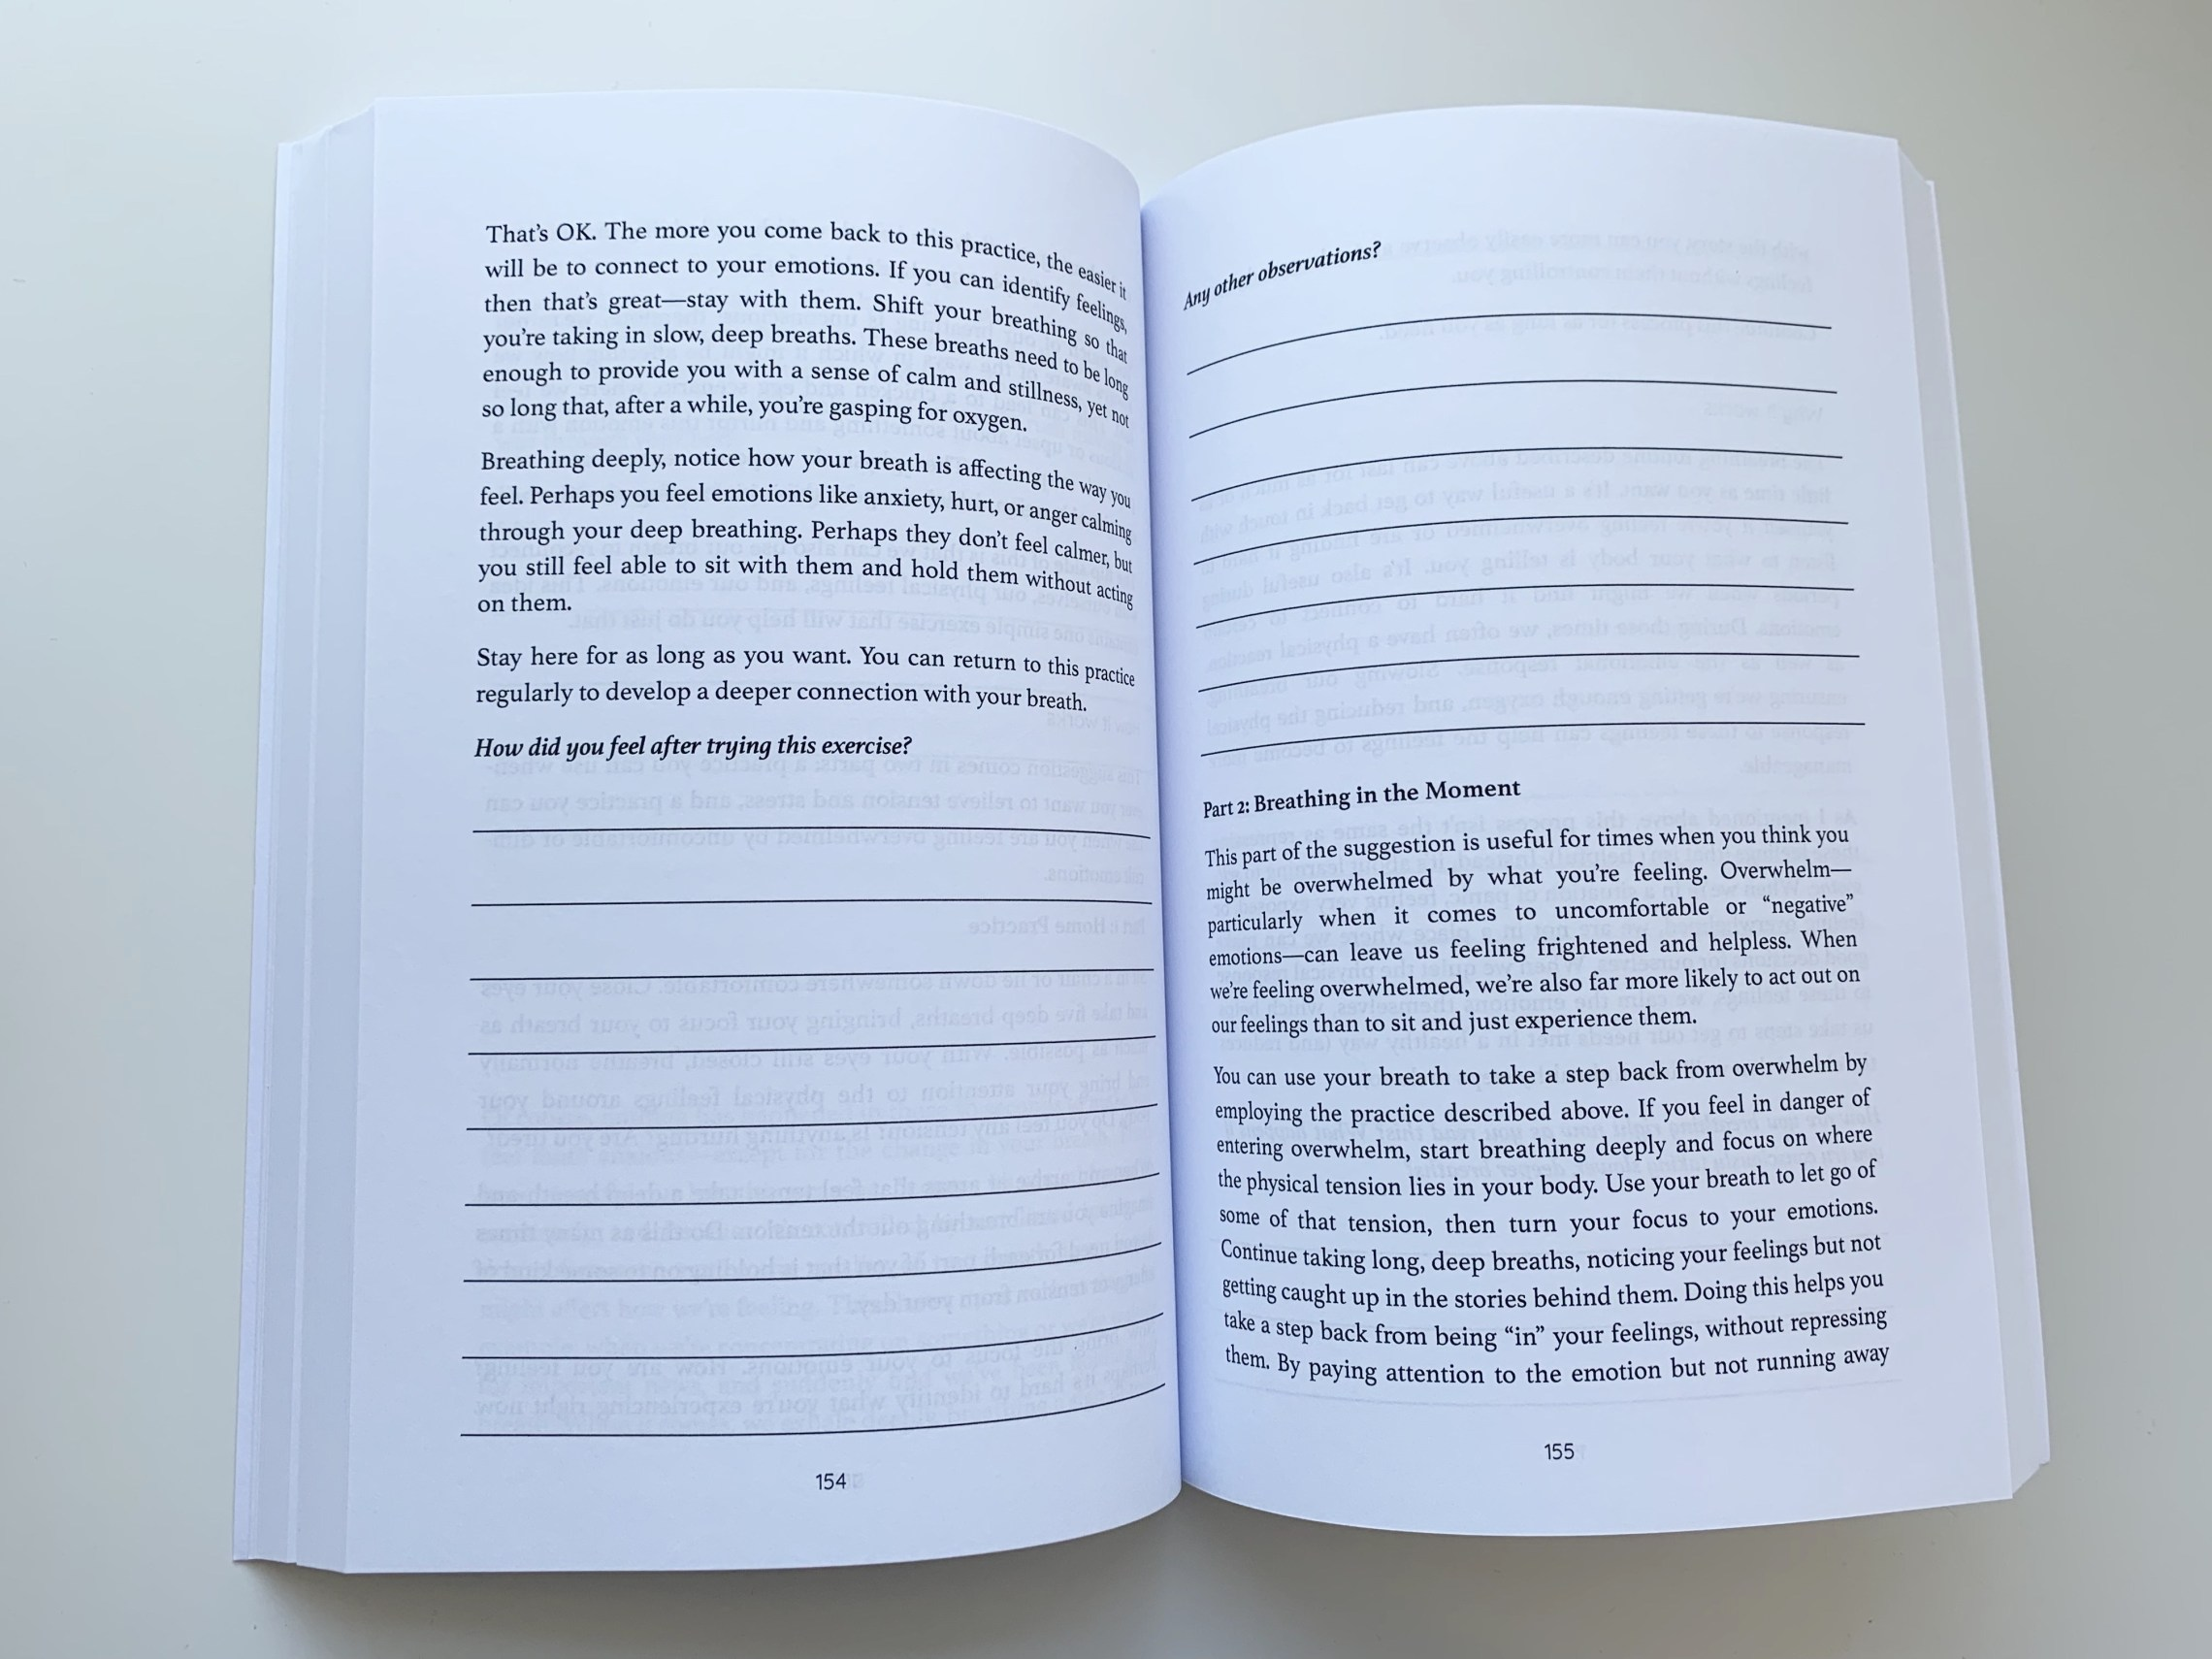 The Workbook - The workbook edition contains all the text of the original book, plus additional questions and space to write your reflections as you work through the book.The workbook is available in two formats:Paperback: available through Amazon or to order through your local bookstorePrintable PDF/Digital workbook: available herePlease note, with the digital version, you won't receive a physical product. The fillable PDF can be used in your PDF reader or with a tablet and stylus.